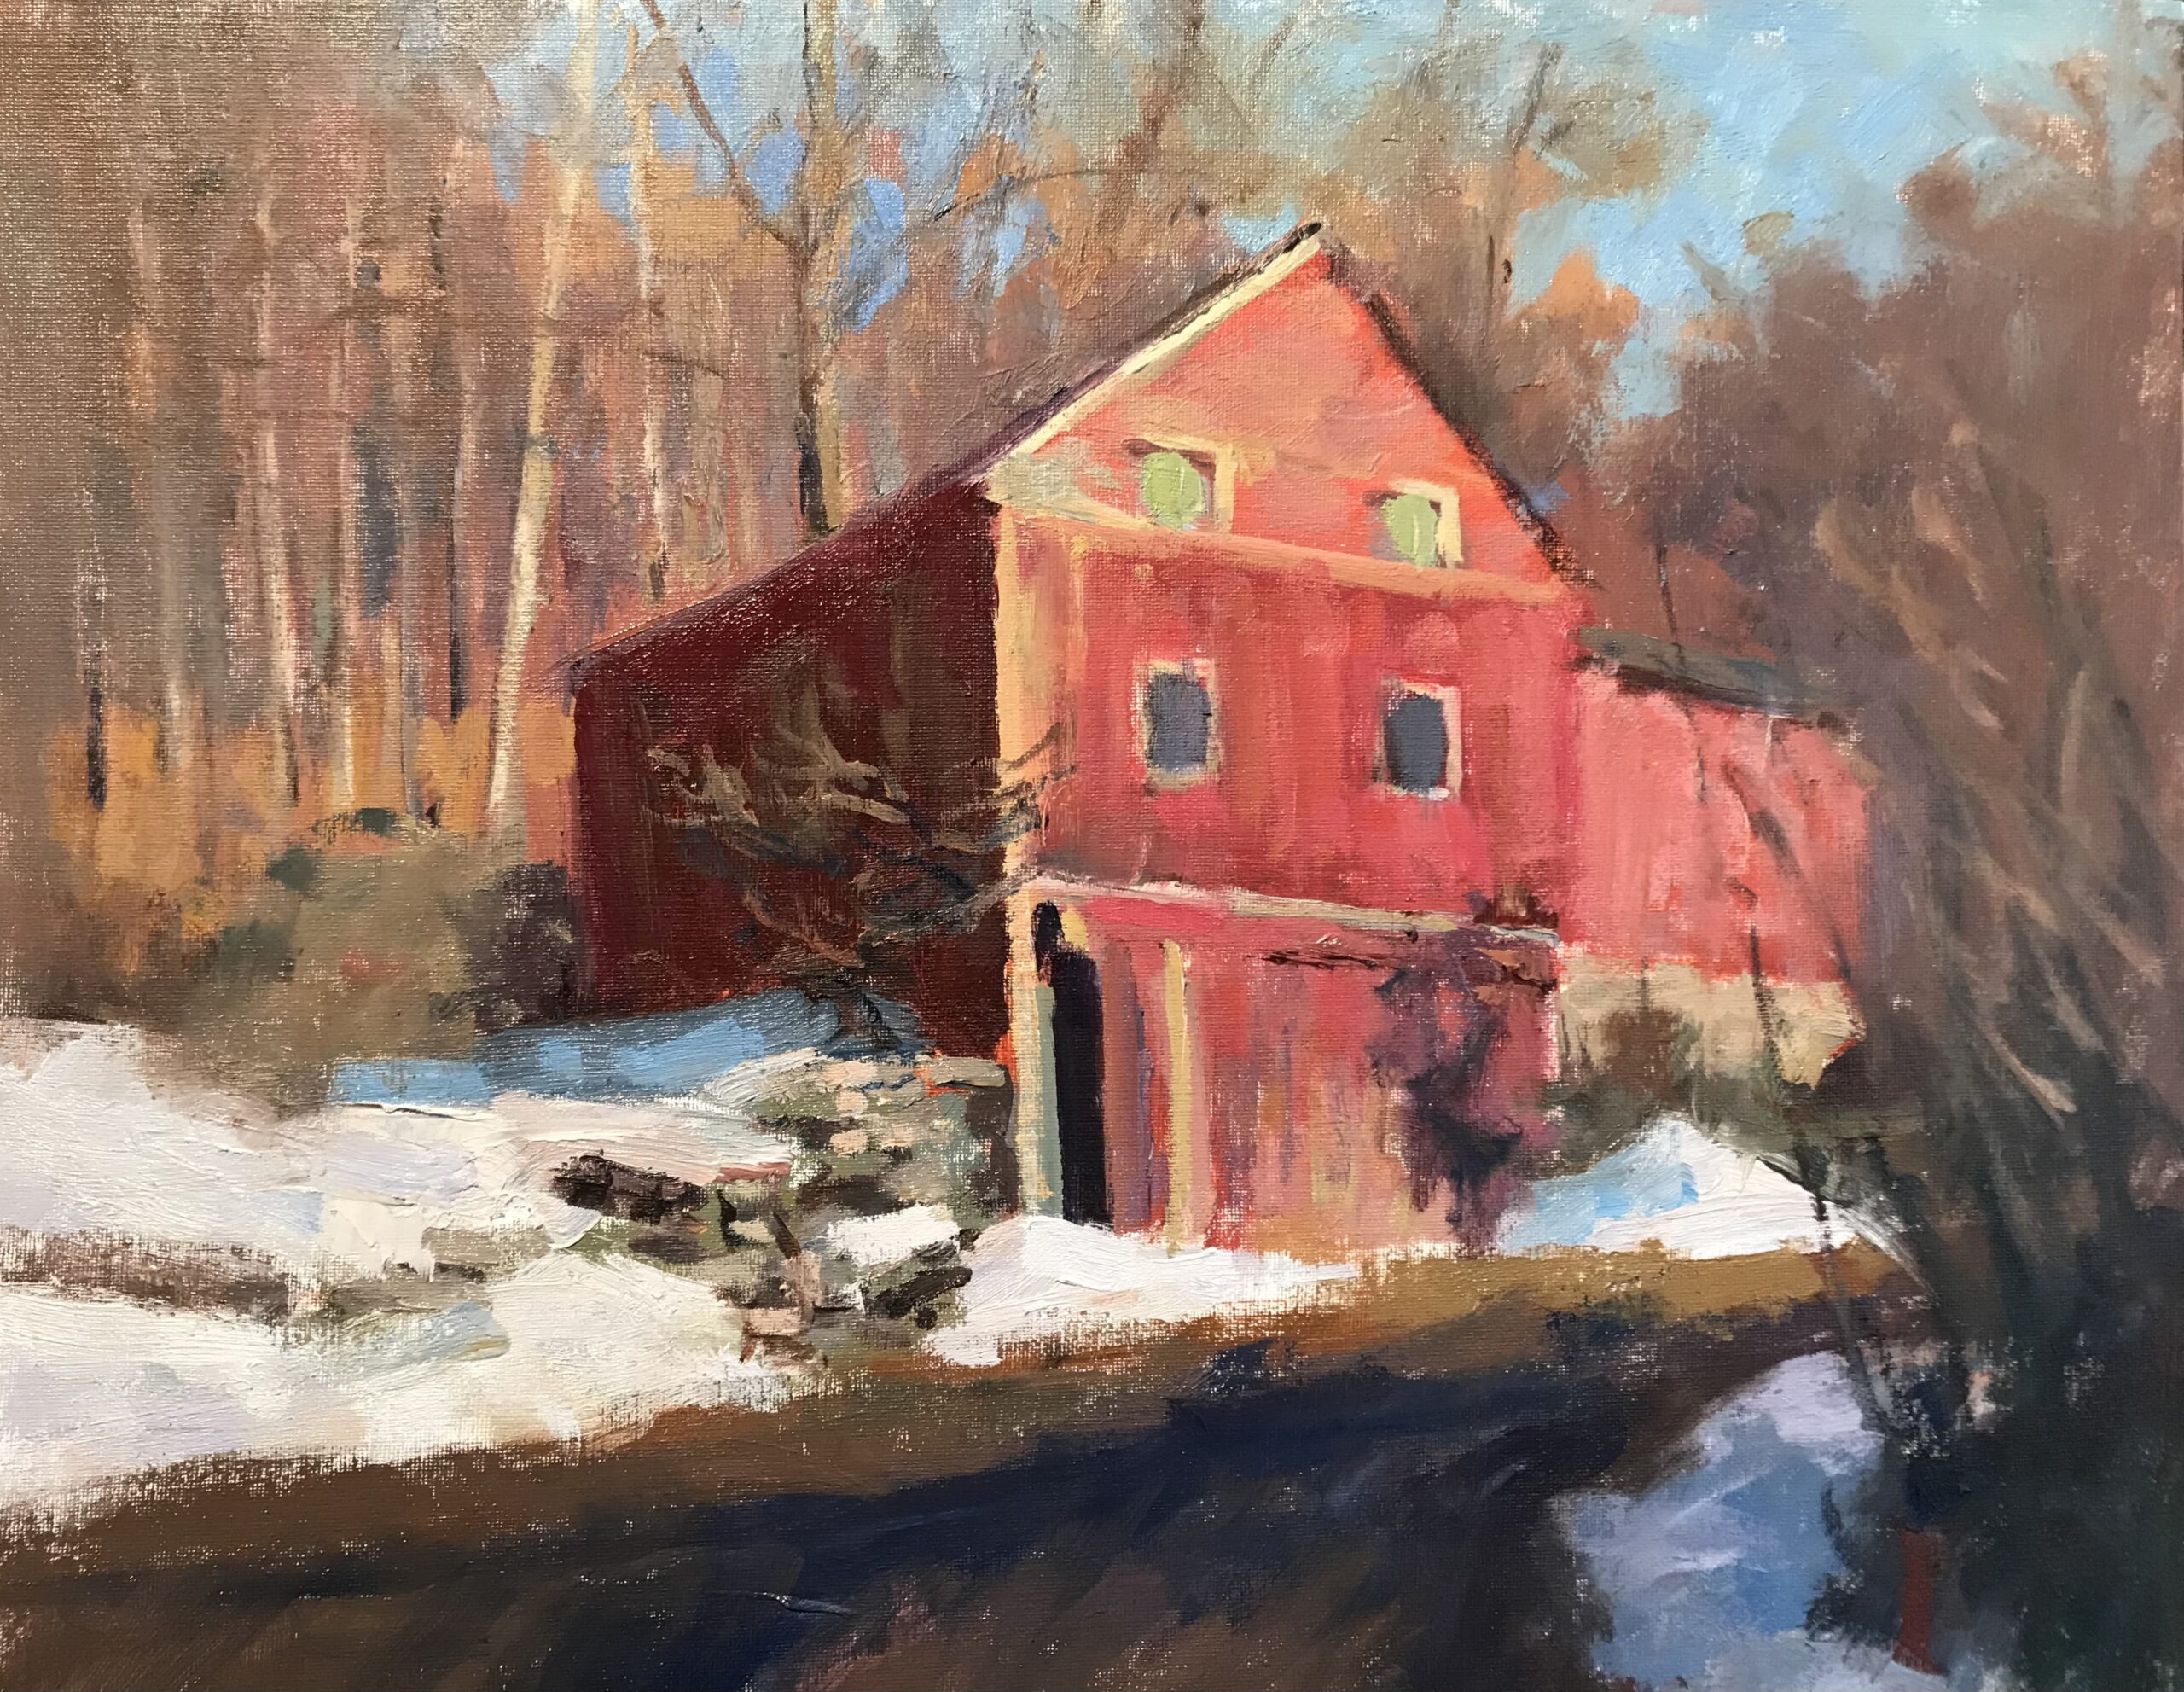 Susan's Barn, Oil on Canvas on Panel, 16 x 20 Inches, by Susan Grisell, $550